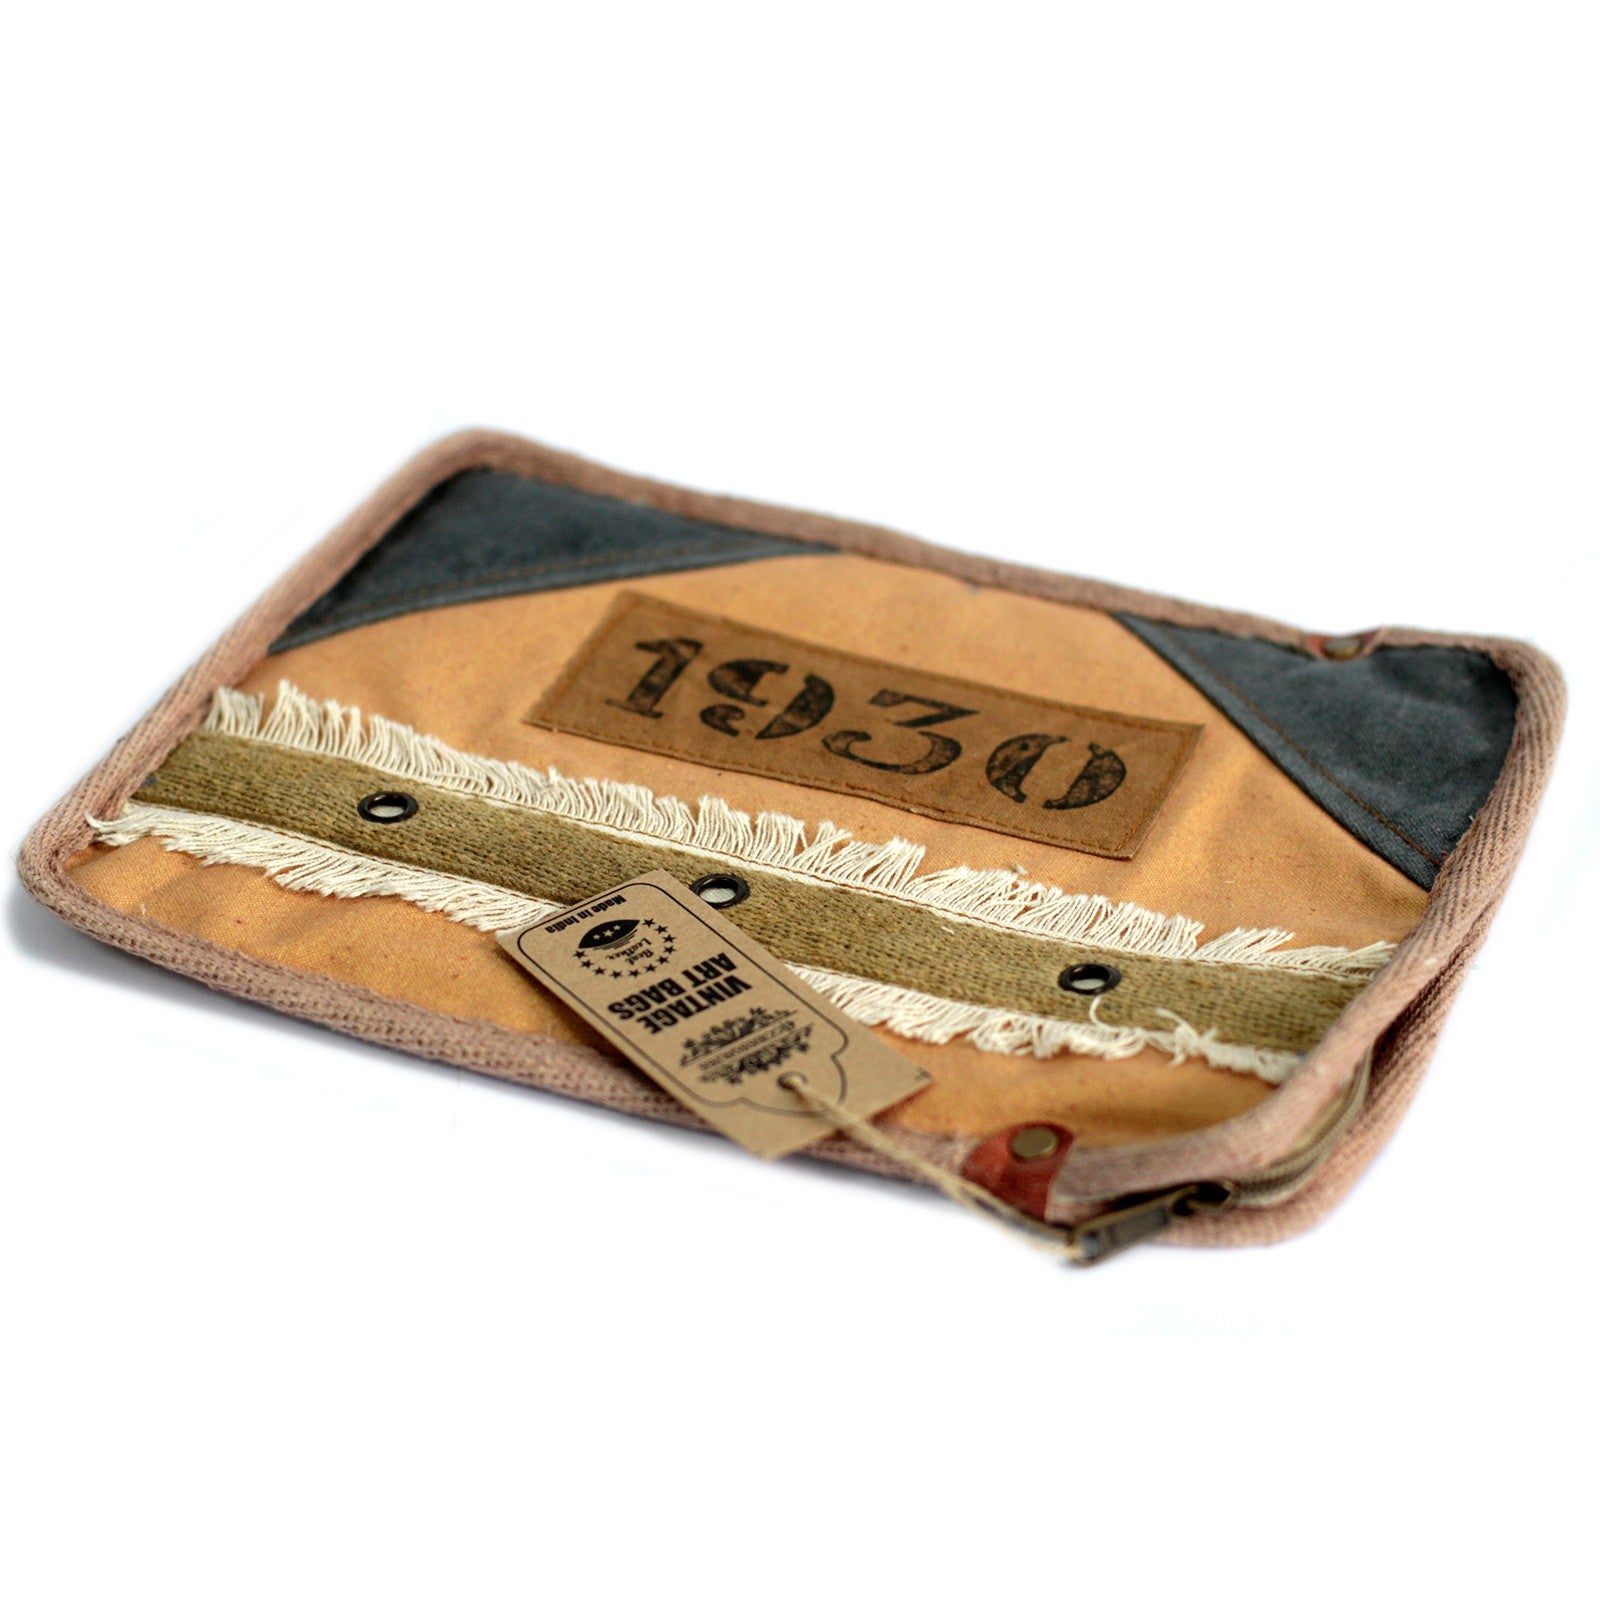 Vintage Bag - Tablet Pouch-1930